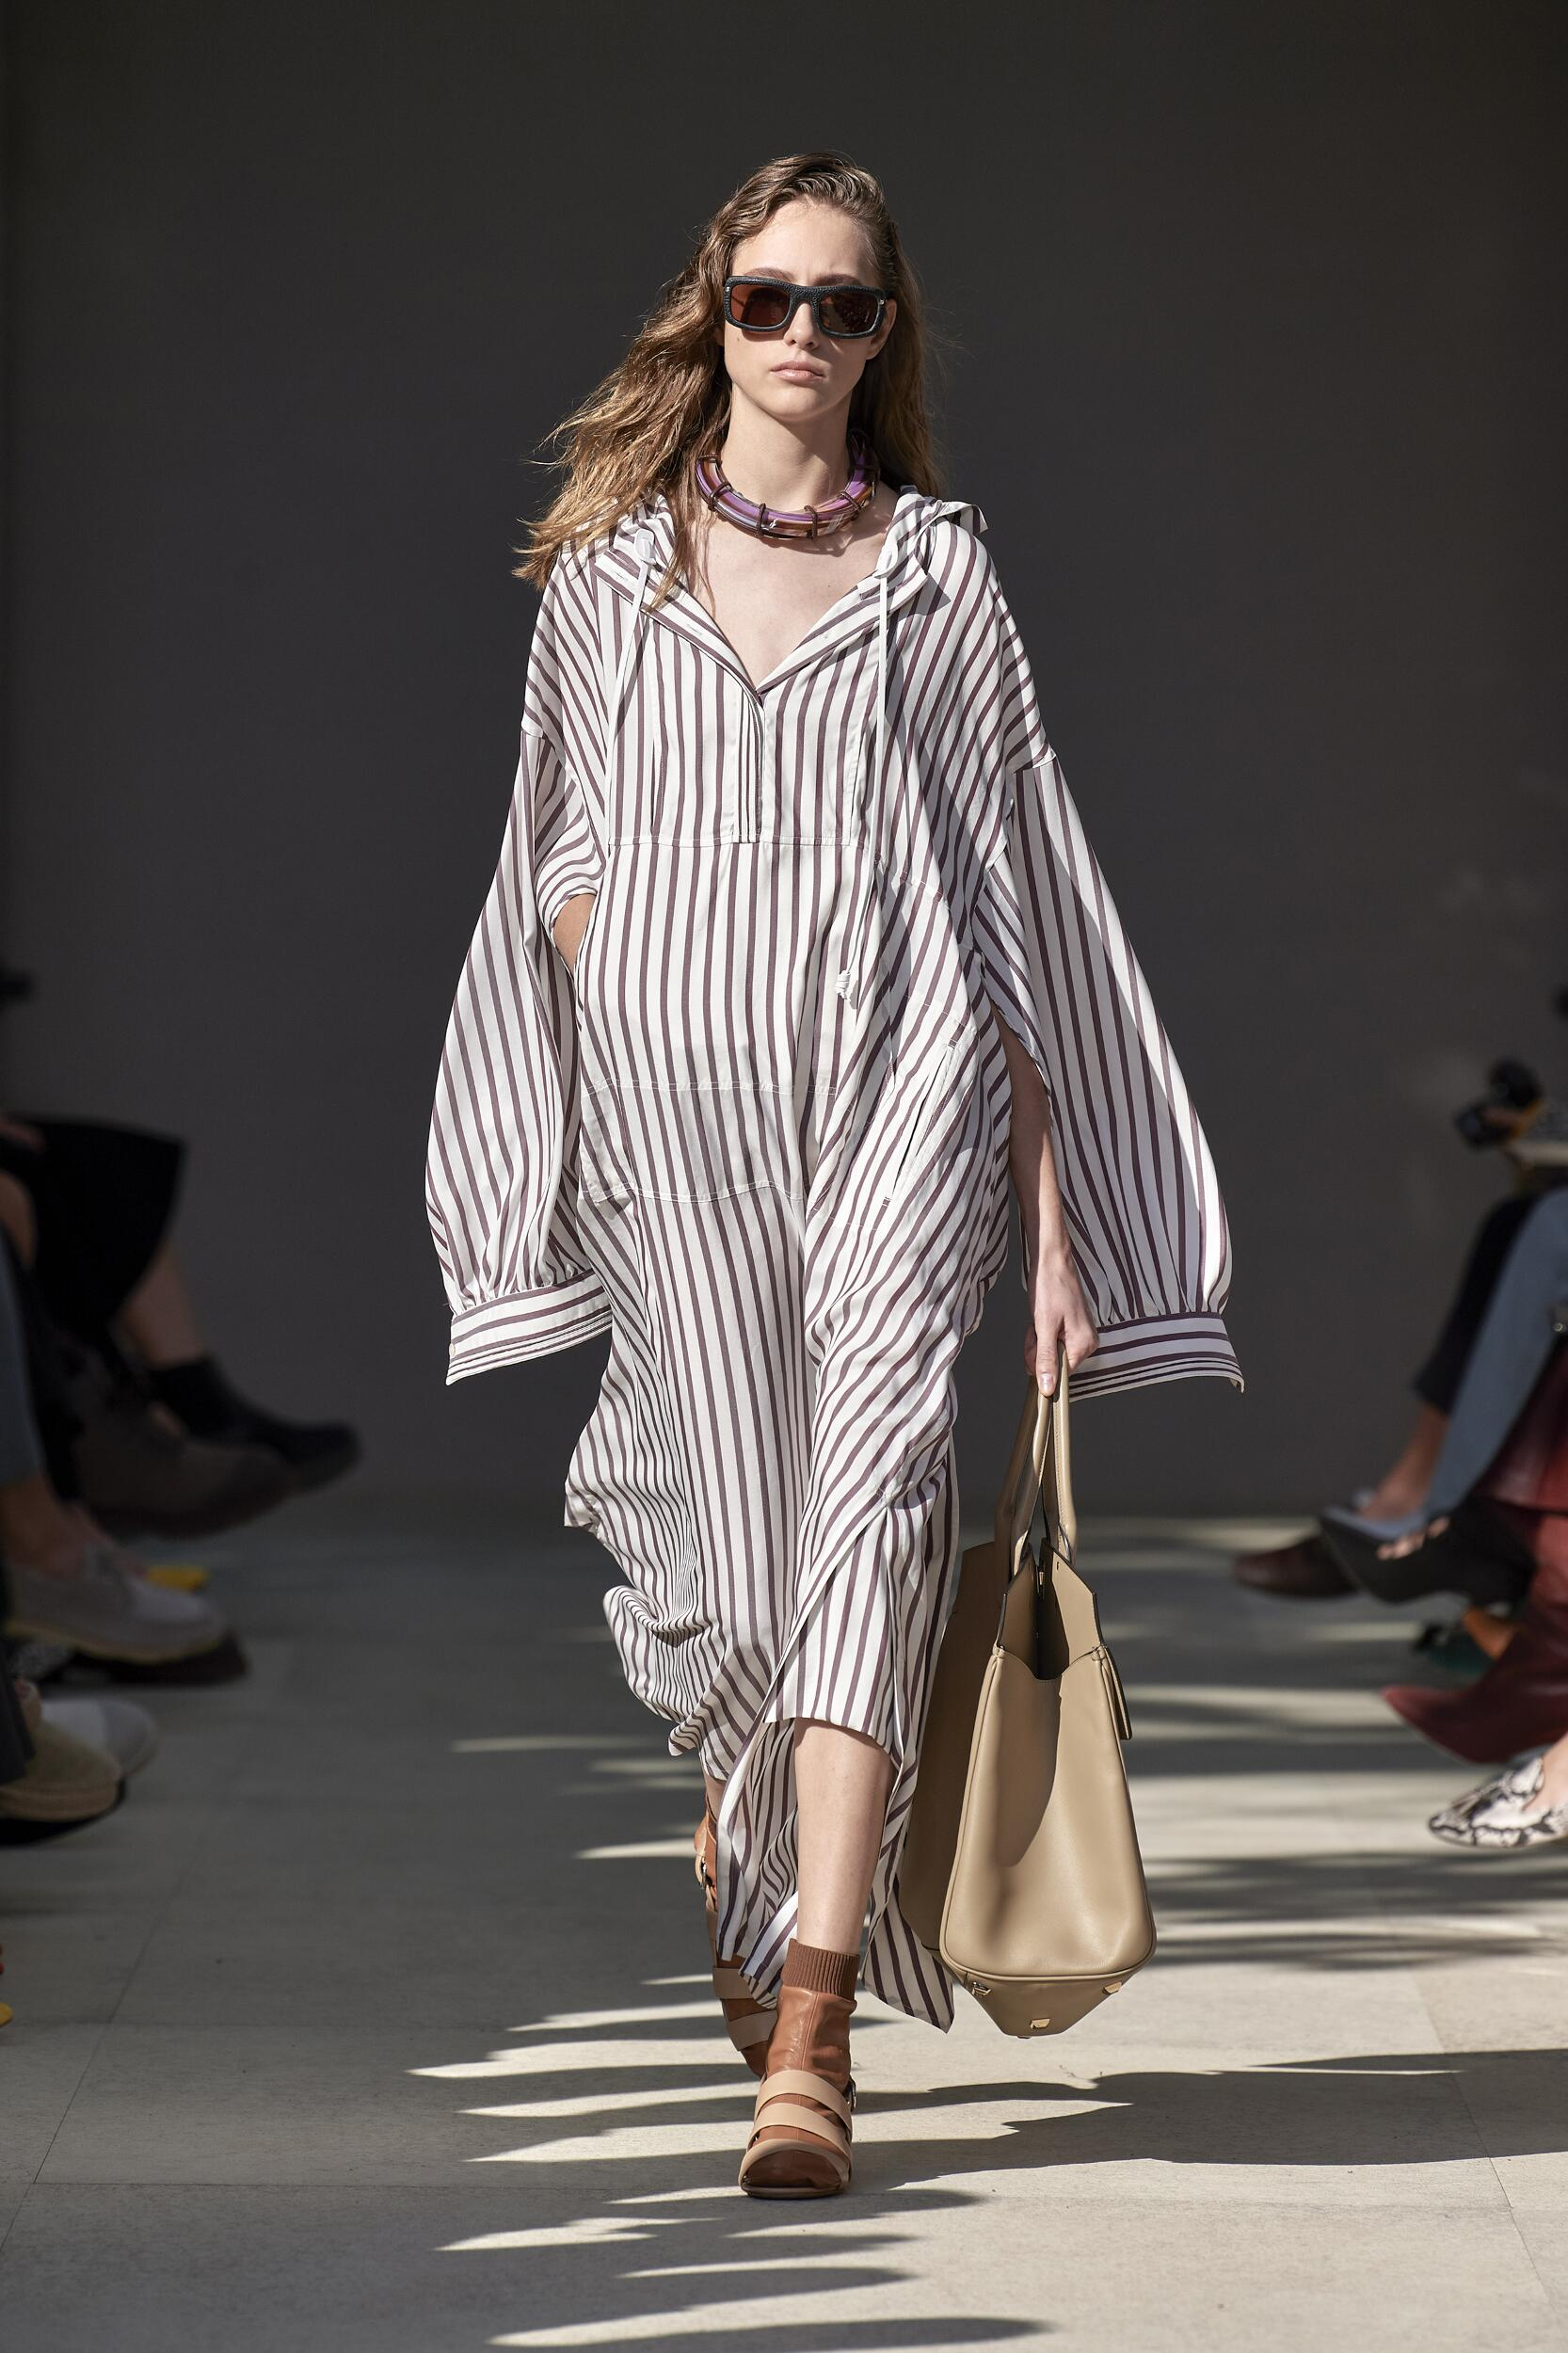 2020 Salvatore Ferragamo Summer Catwalk